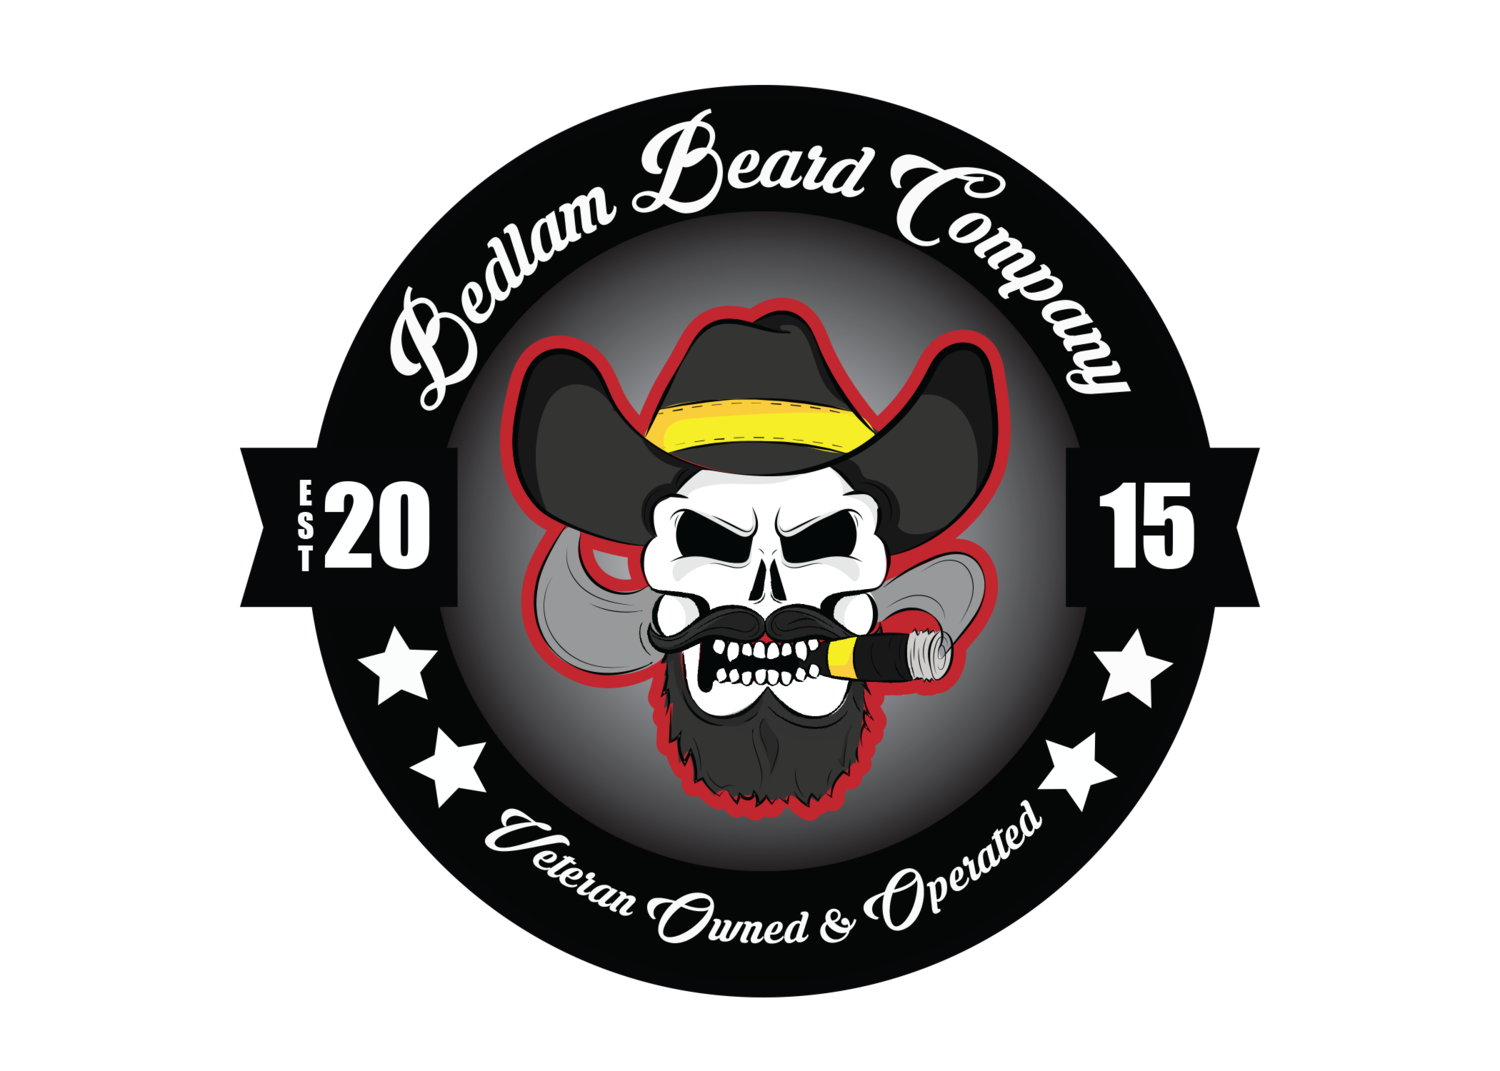 Bedlam Beard Co.